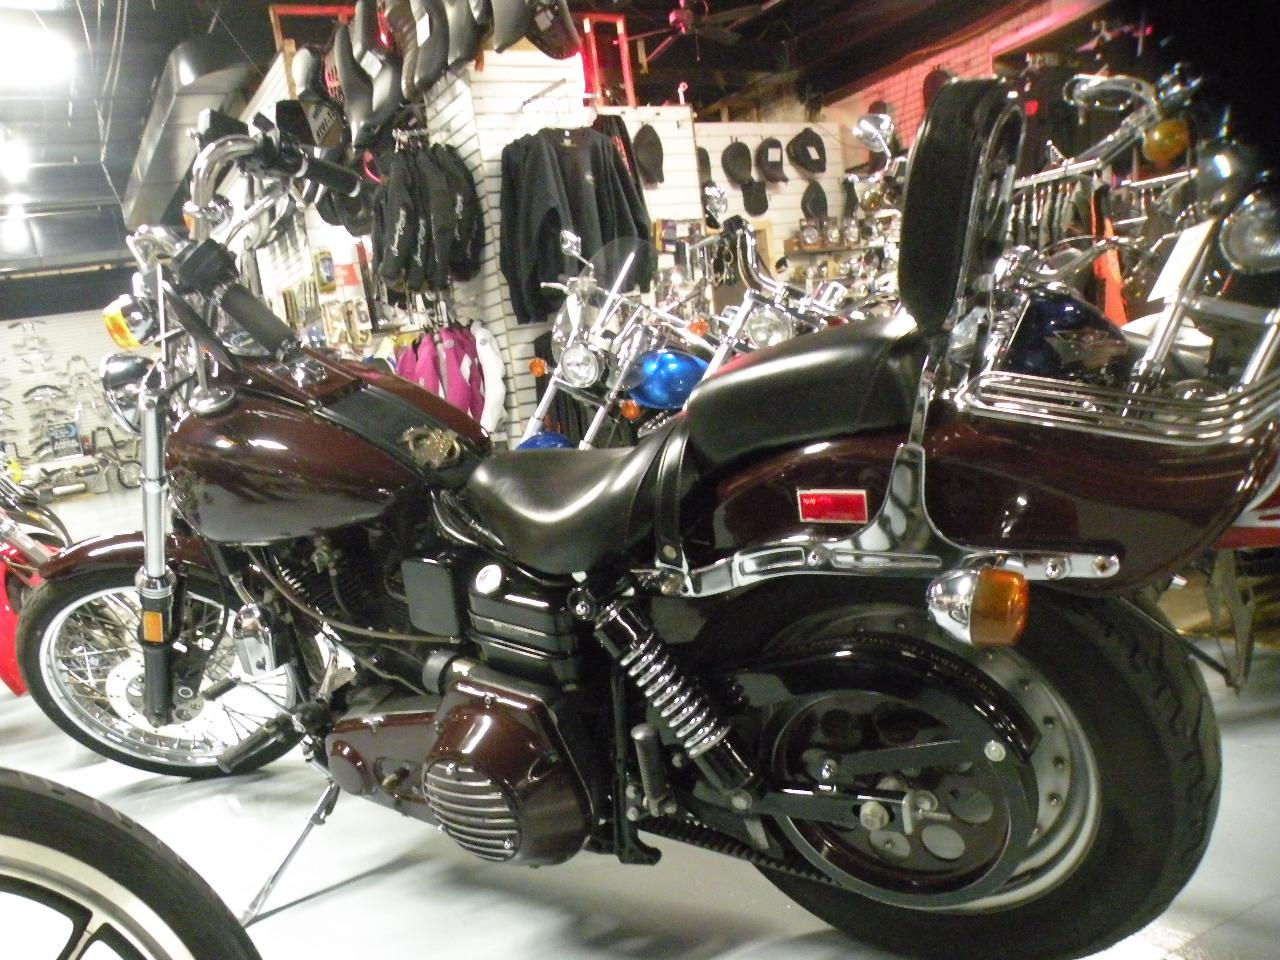 1983 Harley-Davidson Willie G Special FXDG Wide Glide, motorcycle listing